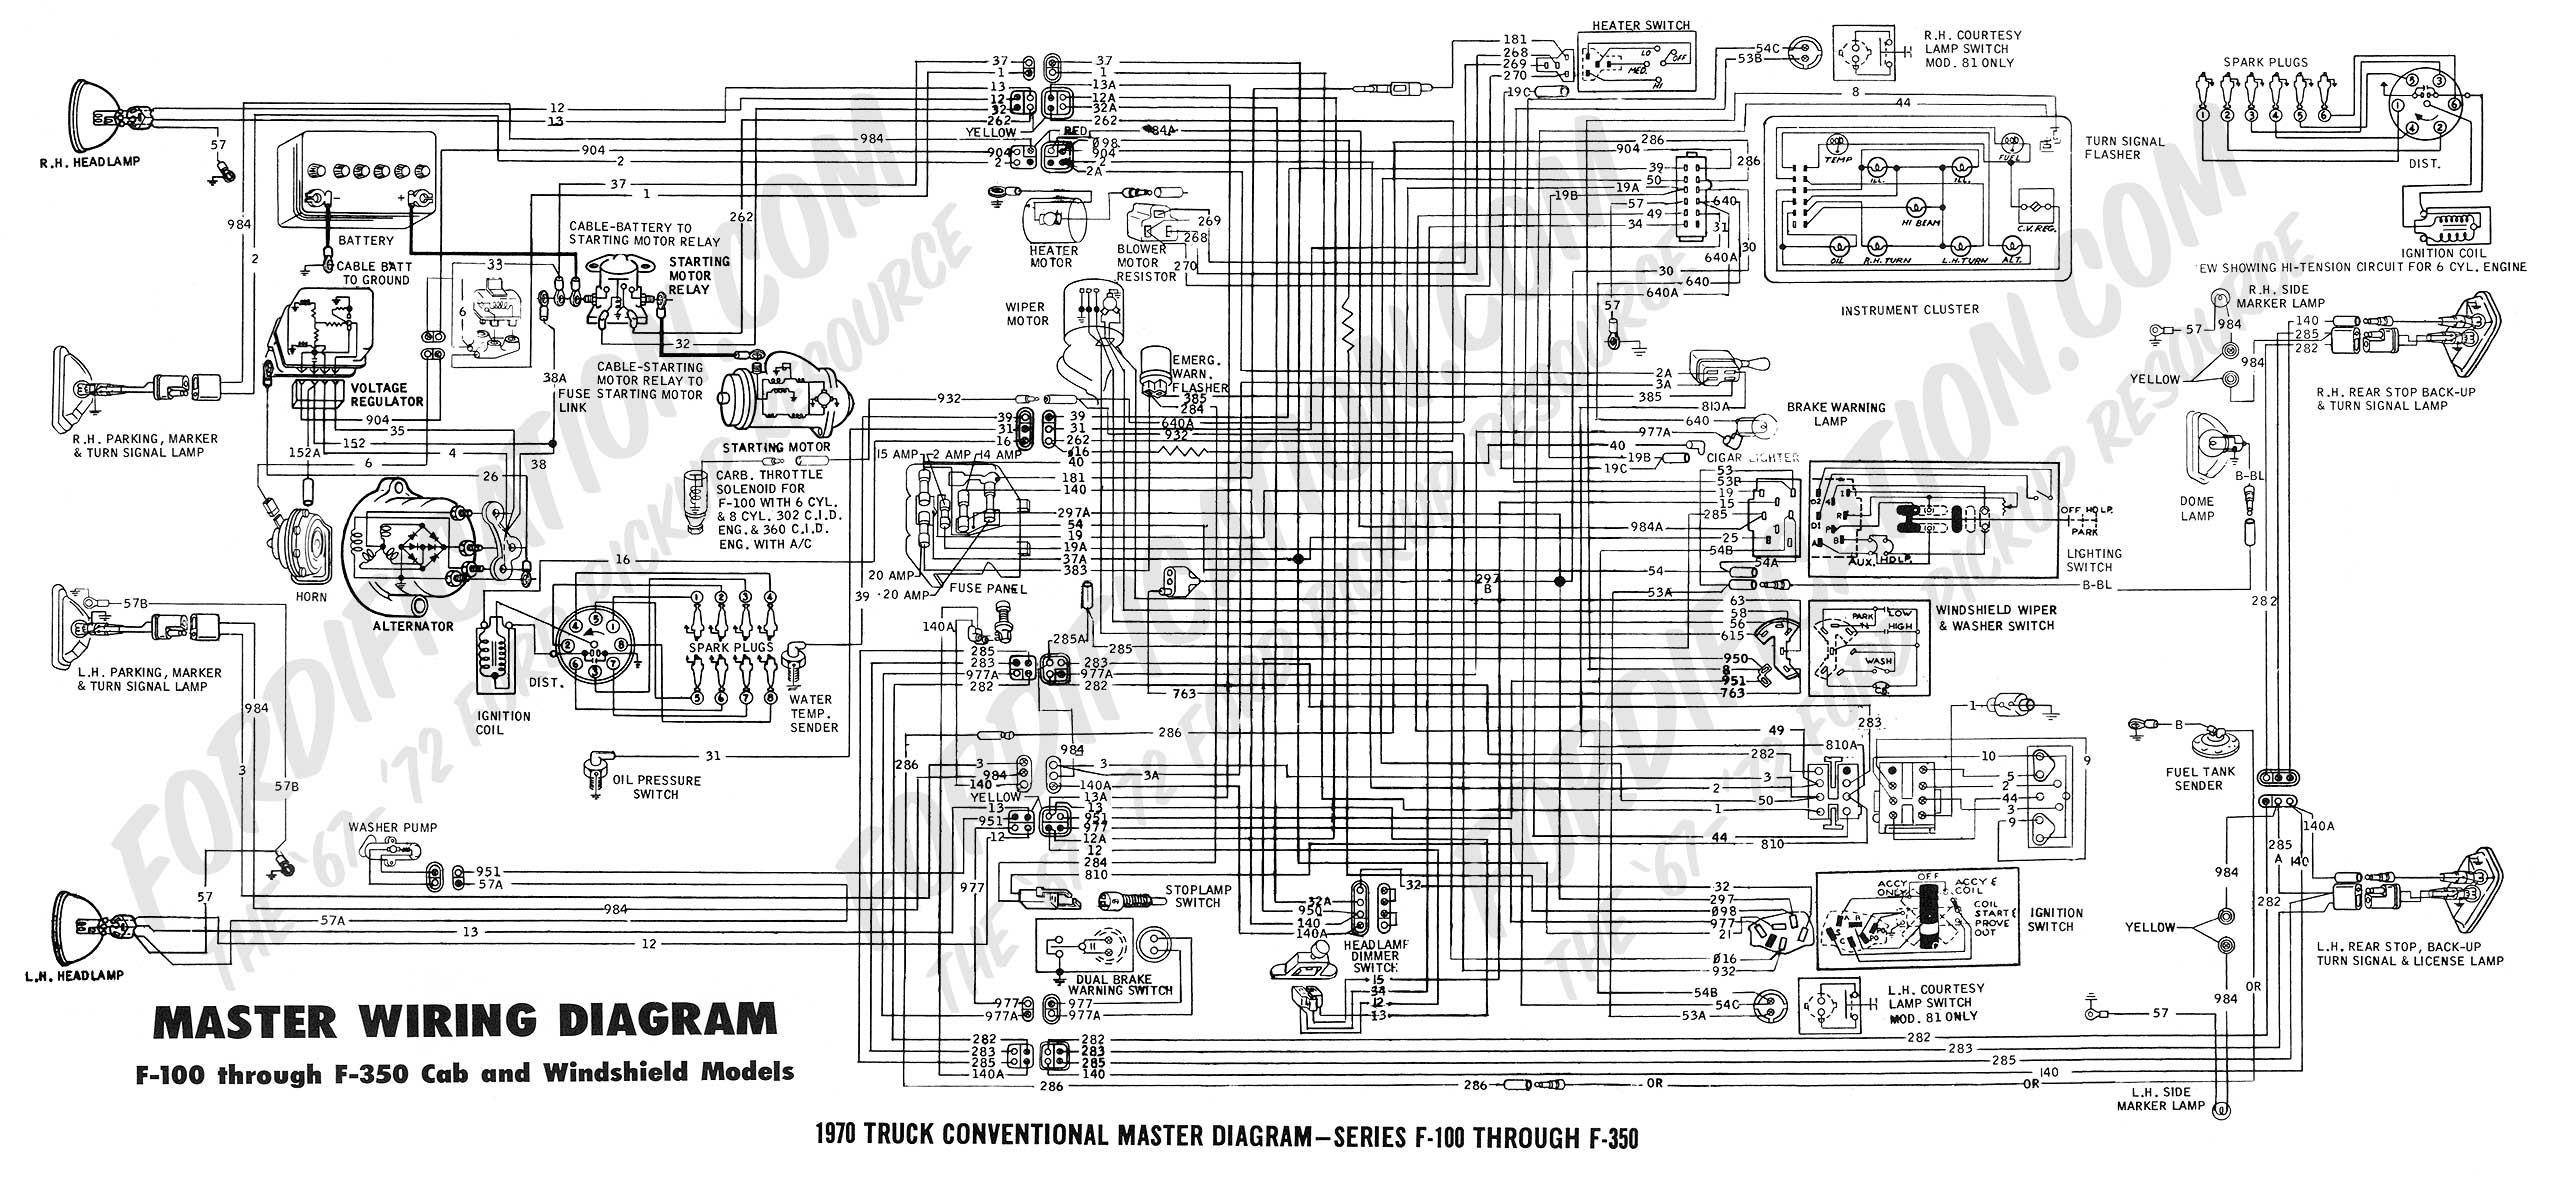 84 f250 fuel tank wiring diagram with Schematics H on Schematics h likewise 1131482 Good Alternator Battery Volt Reg Whats Wrong as well Watch furthermore Solved Need A Wiring Diagram For 2001 Pt Cruiser Fixya With Regard To 2006 Pt Cruiser Engine Diagram likewise Viewtopic.